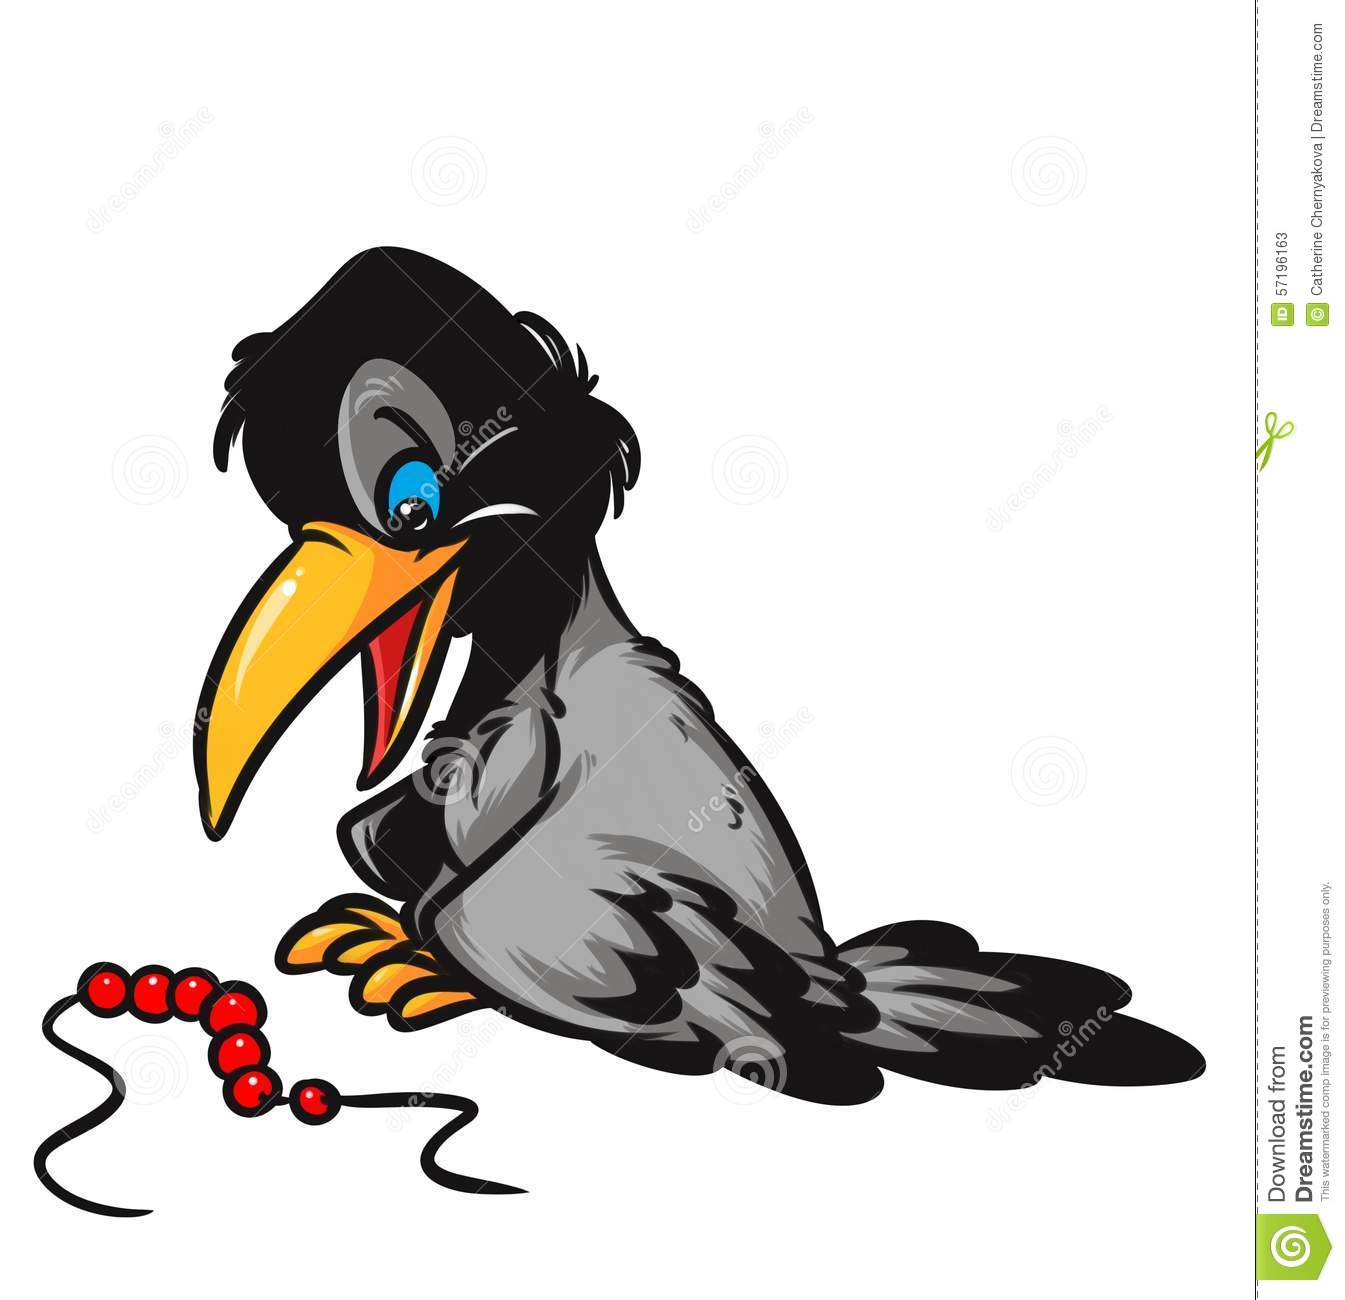 2 Crows Cartoon Characters : Crow beadscartoon illustration stock image